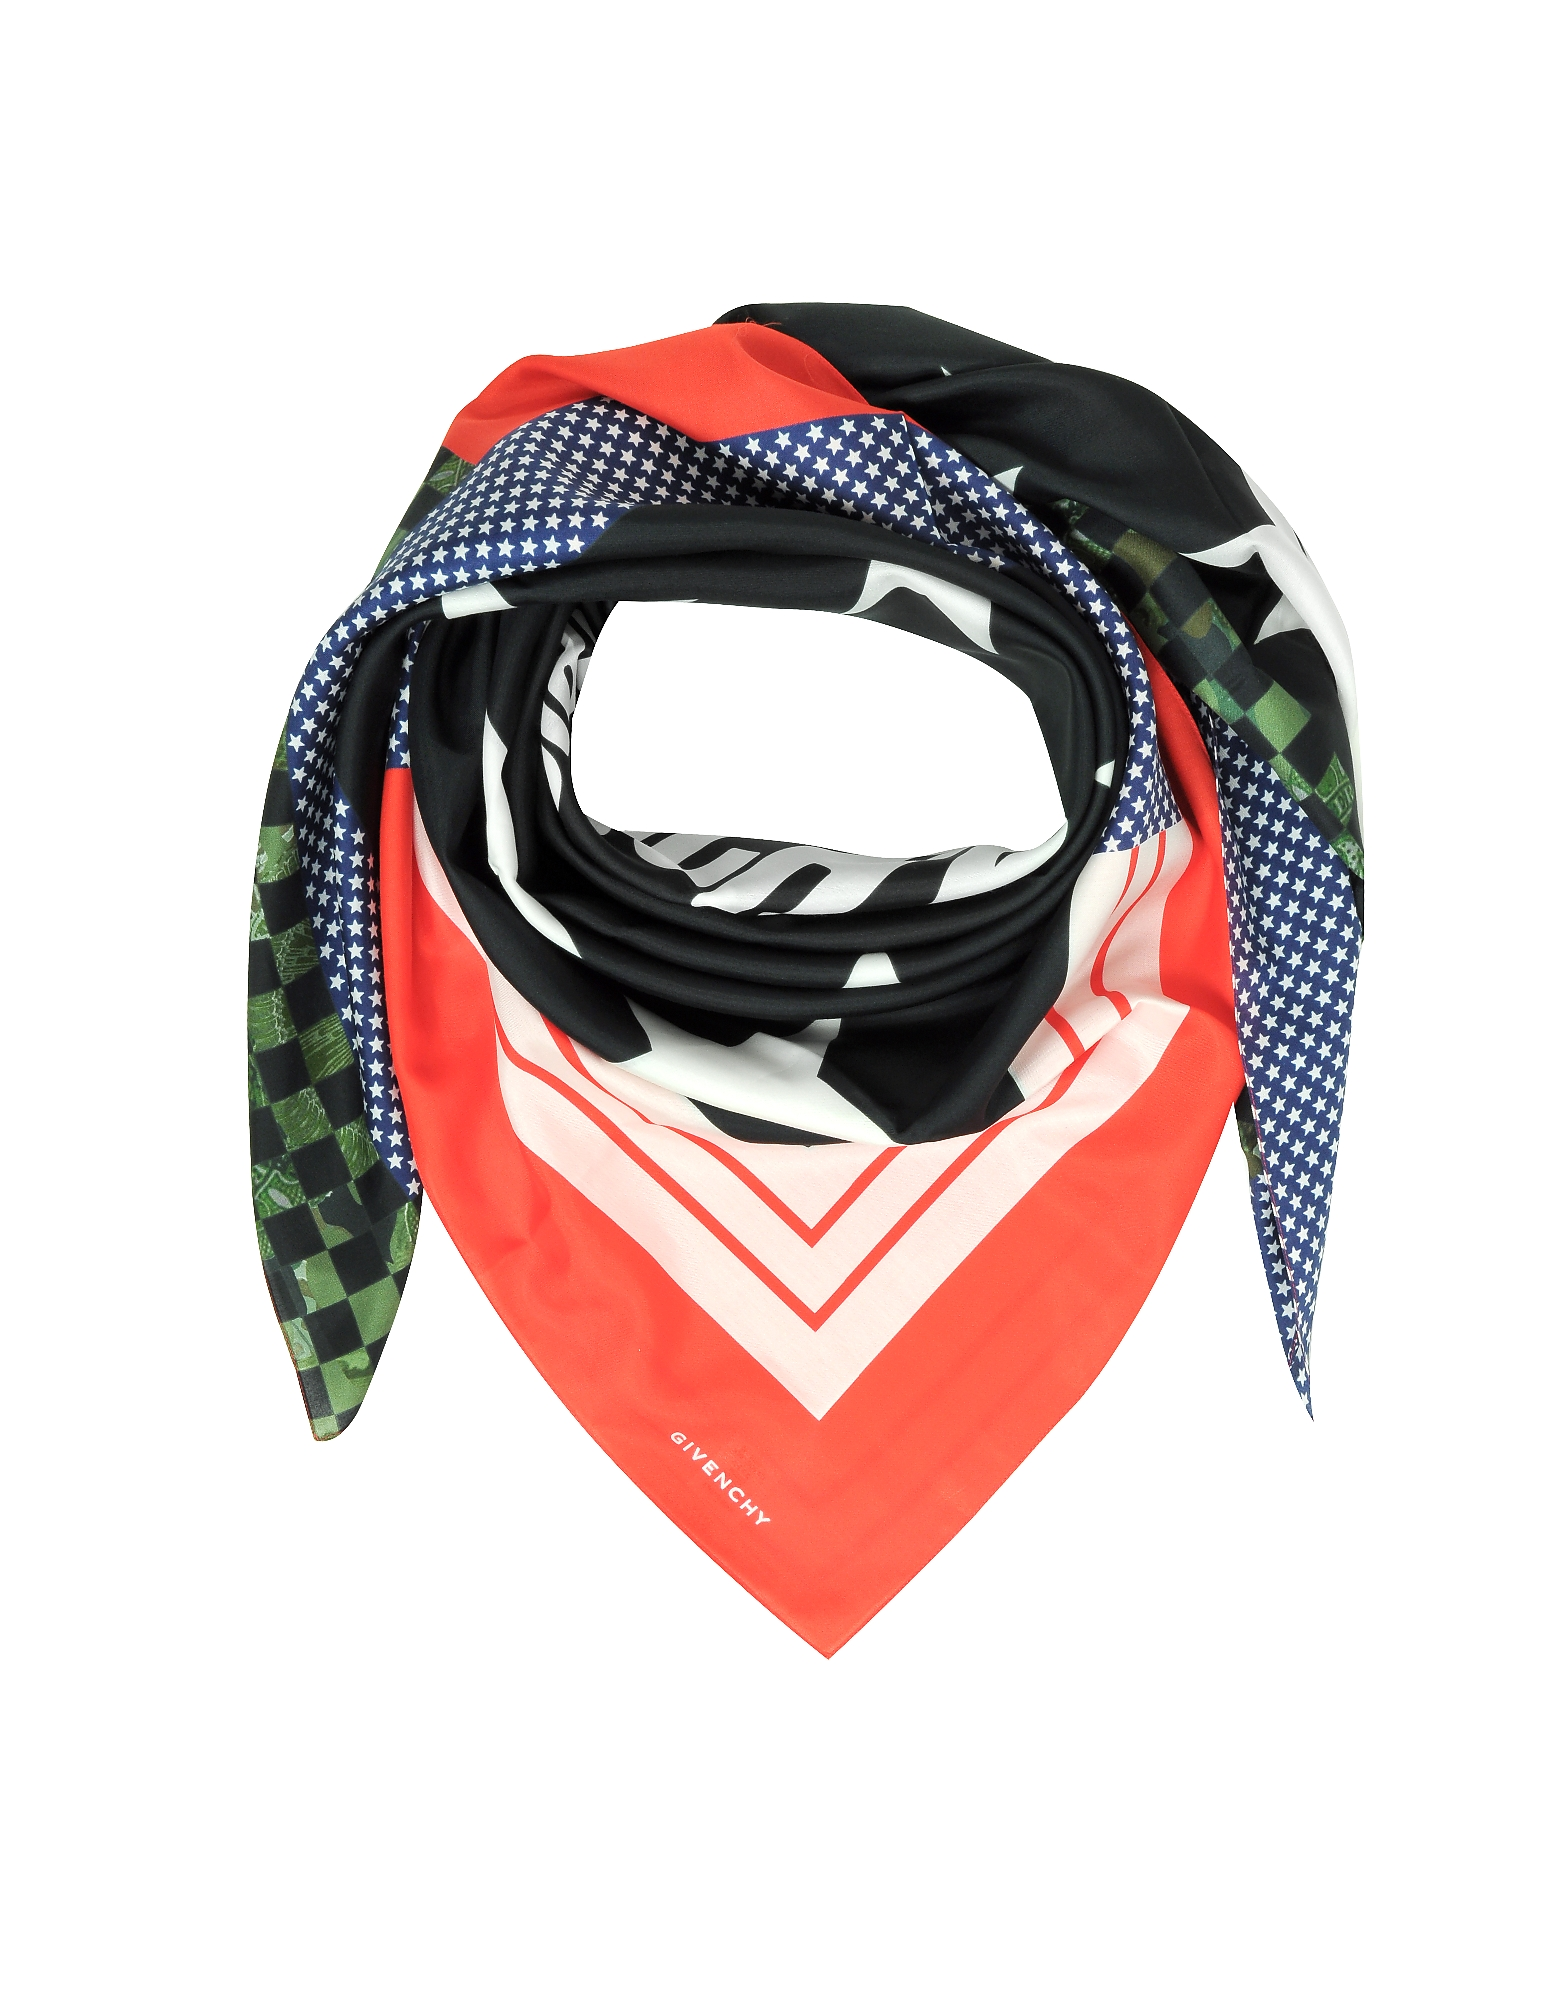 Givenchy Men's Scarves, Patchwork and Signature Printed Cotton and Silk Wrap